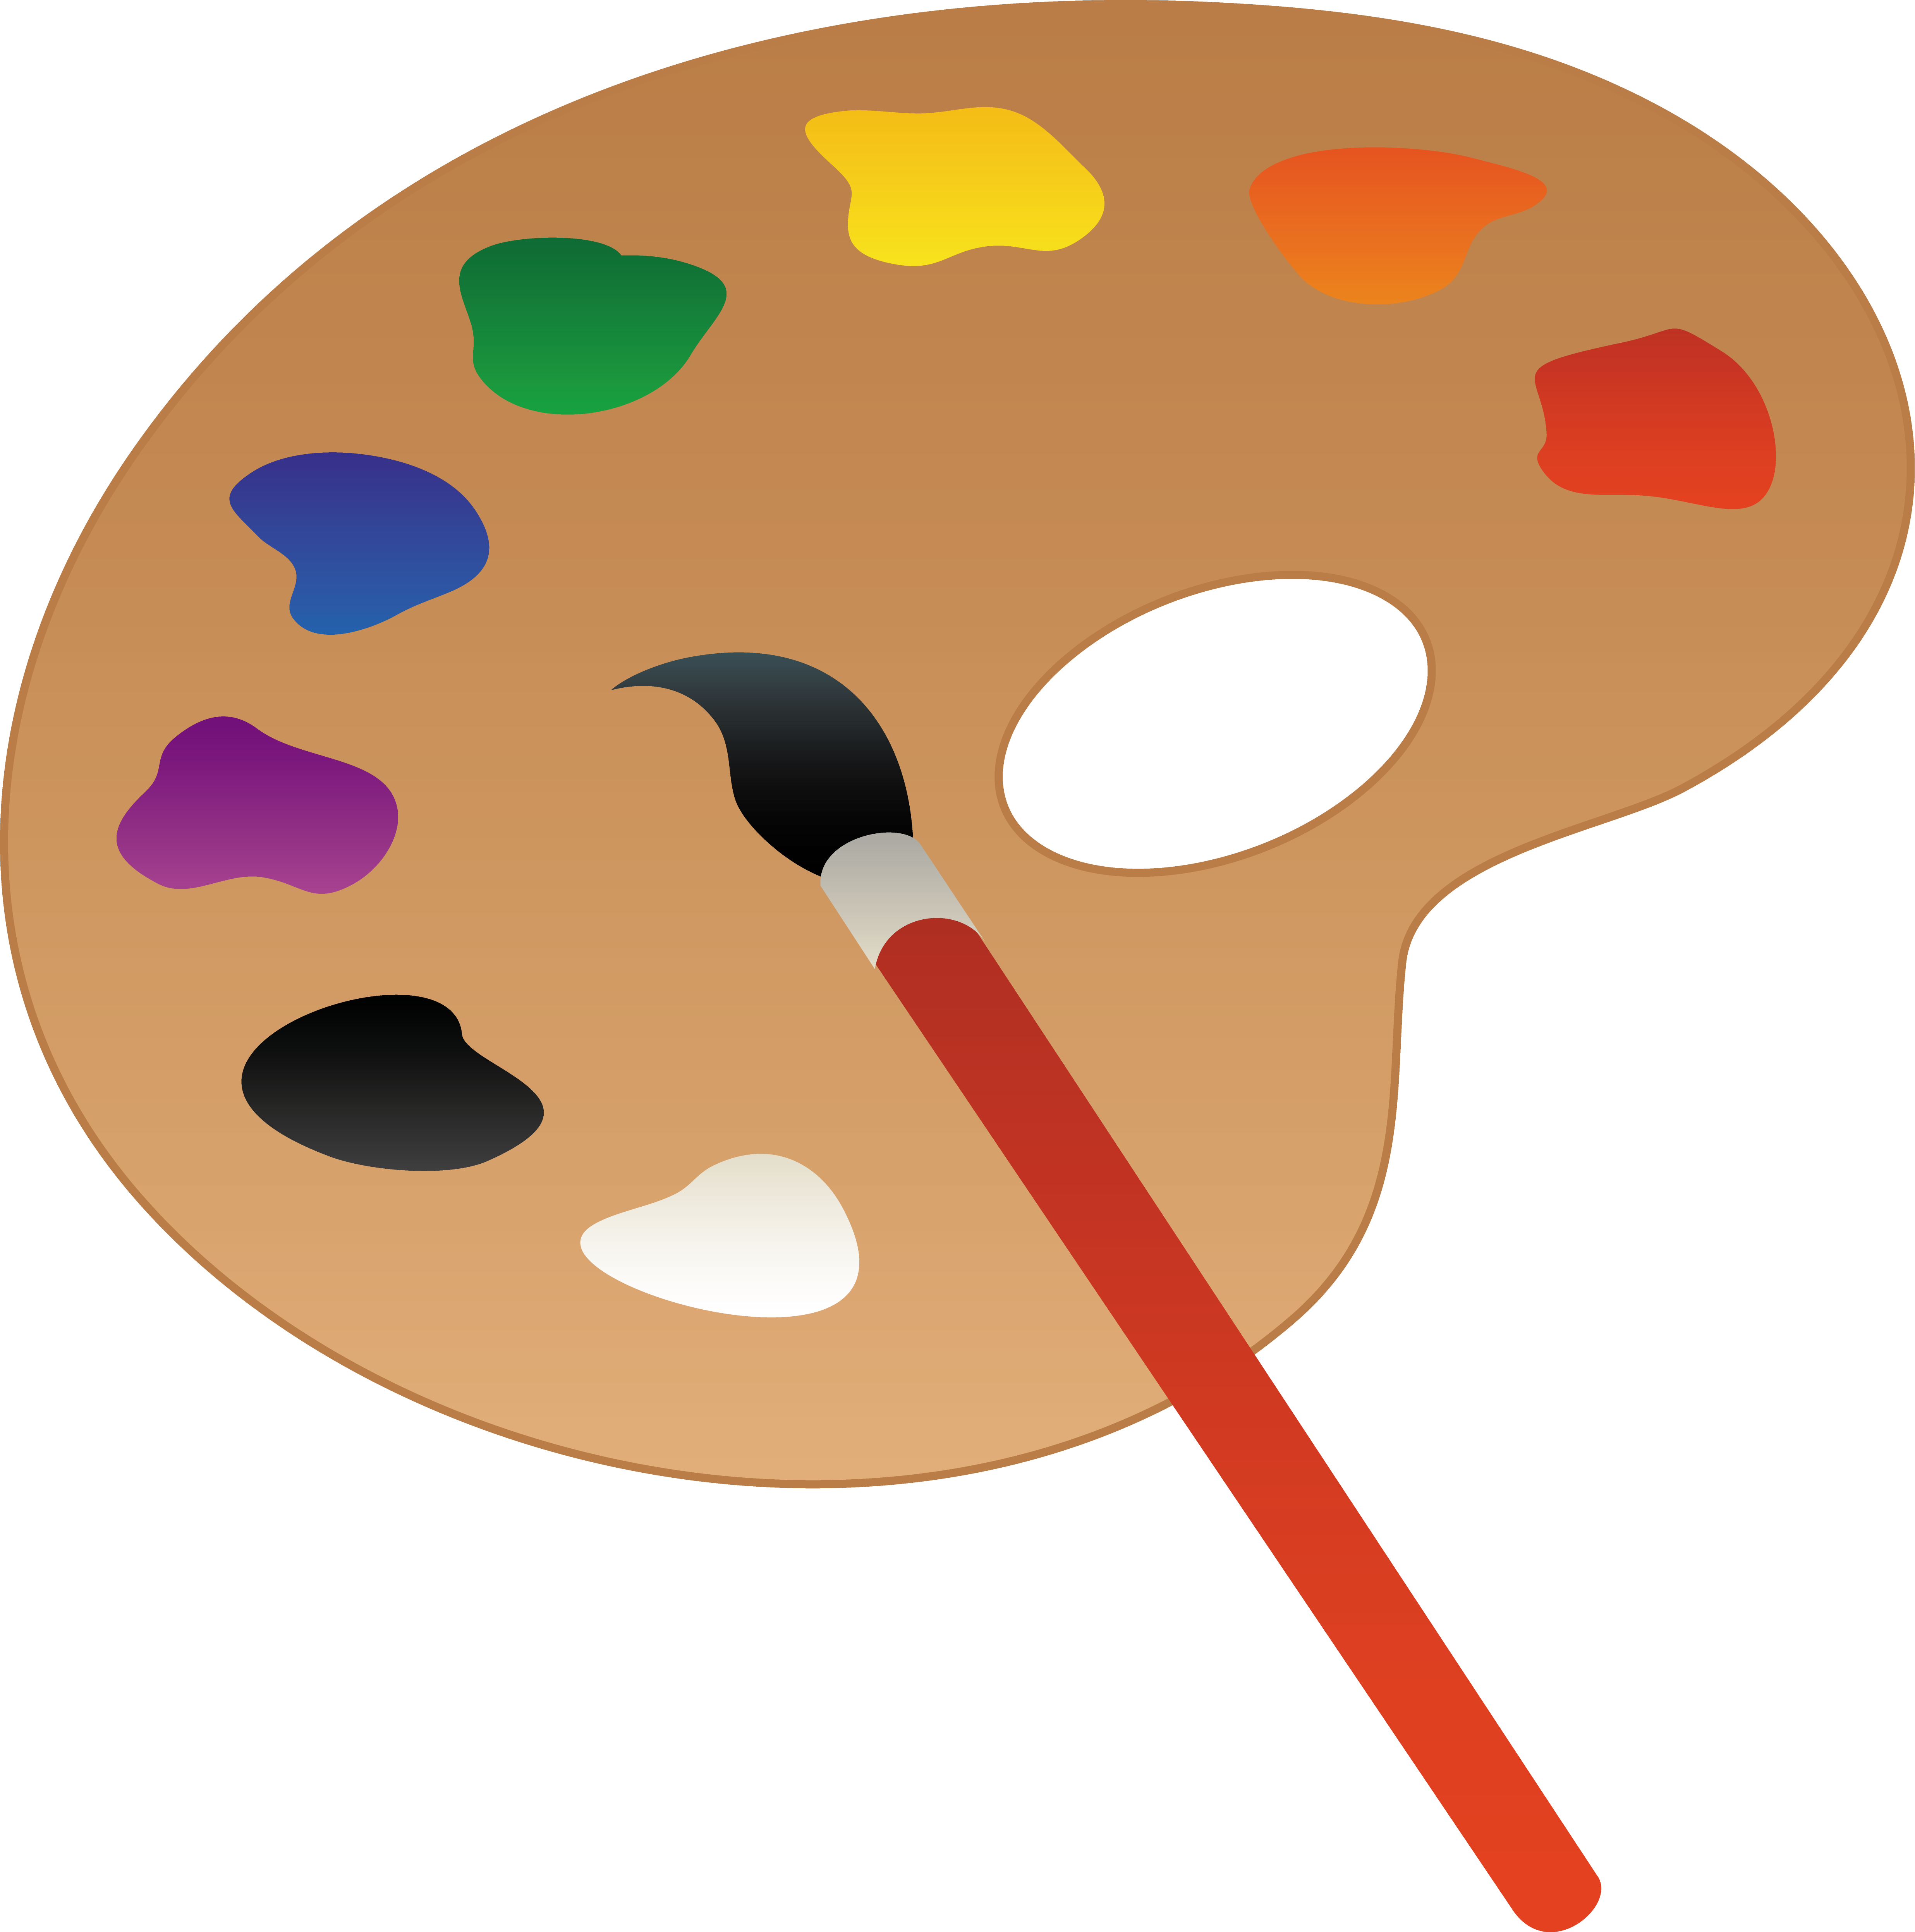 Paint Brush Clip Art Free - Cliparts.co